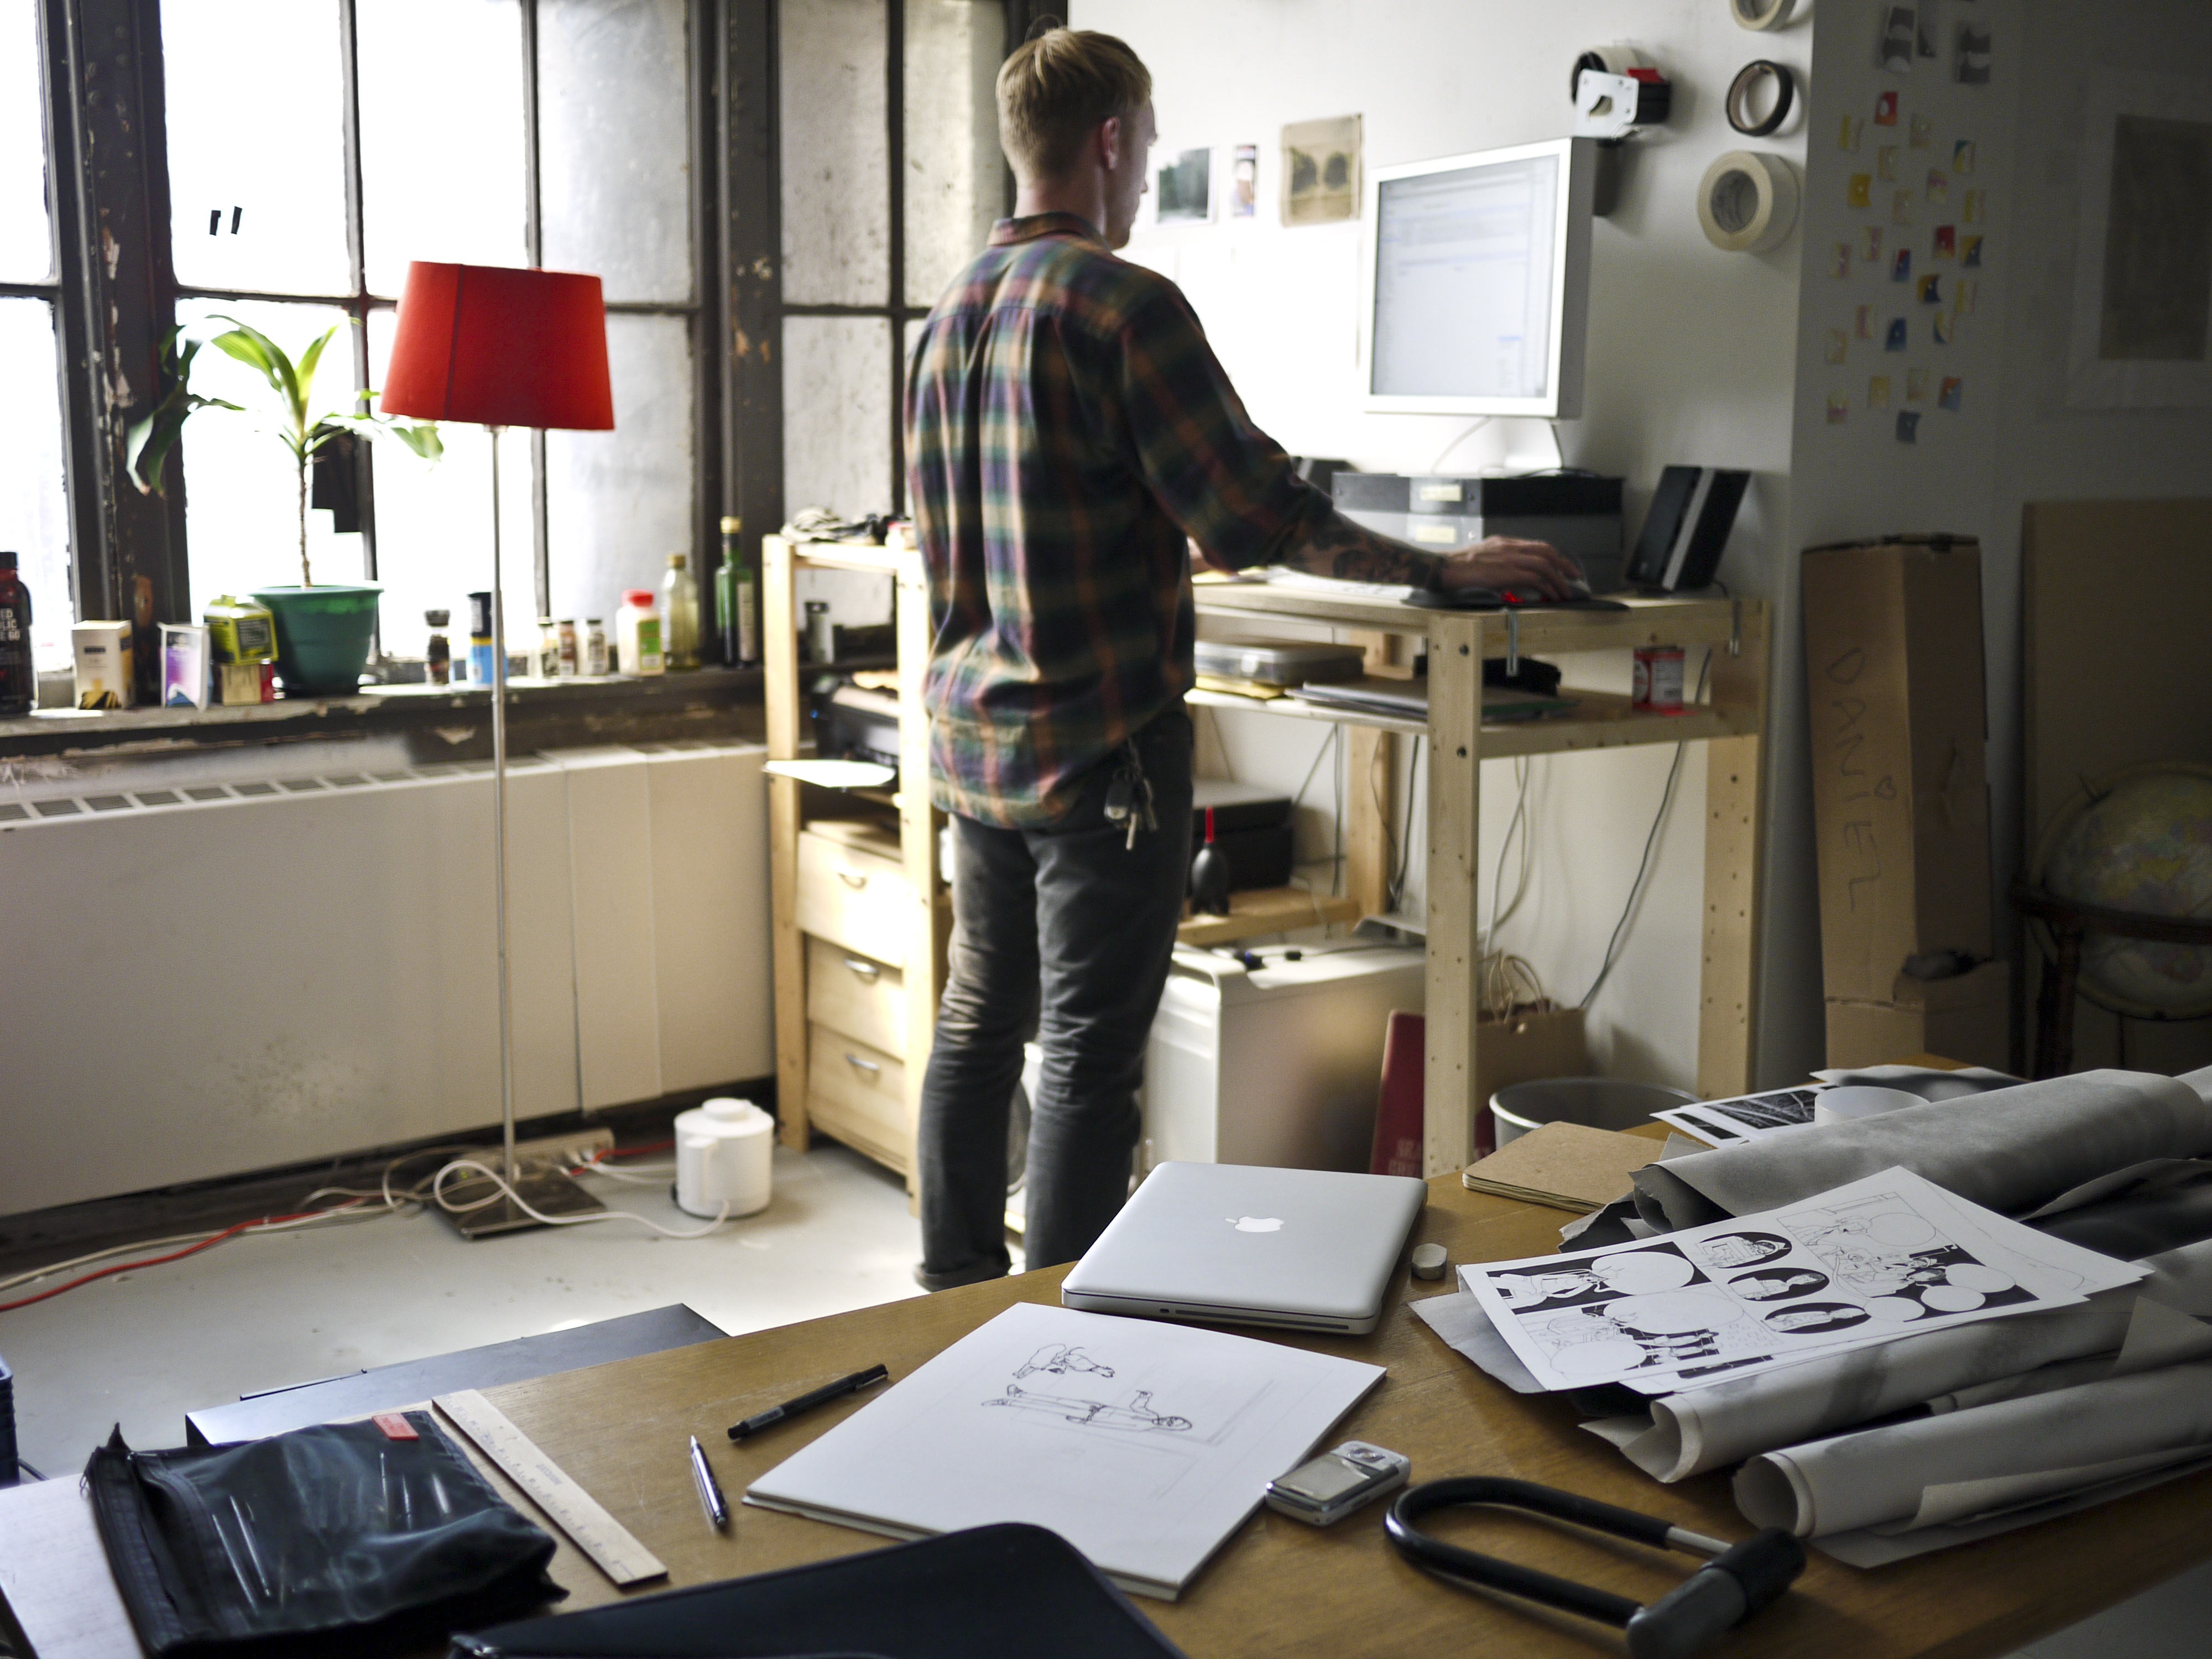 Standing Desks Might Not Be Worth the Hype